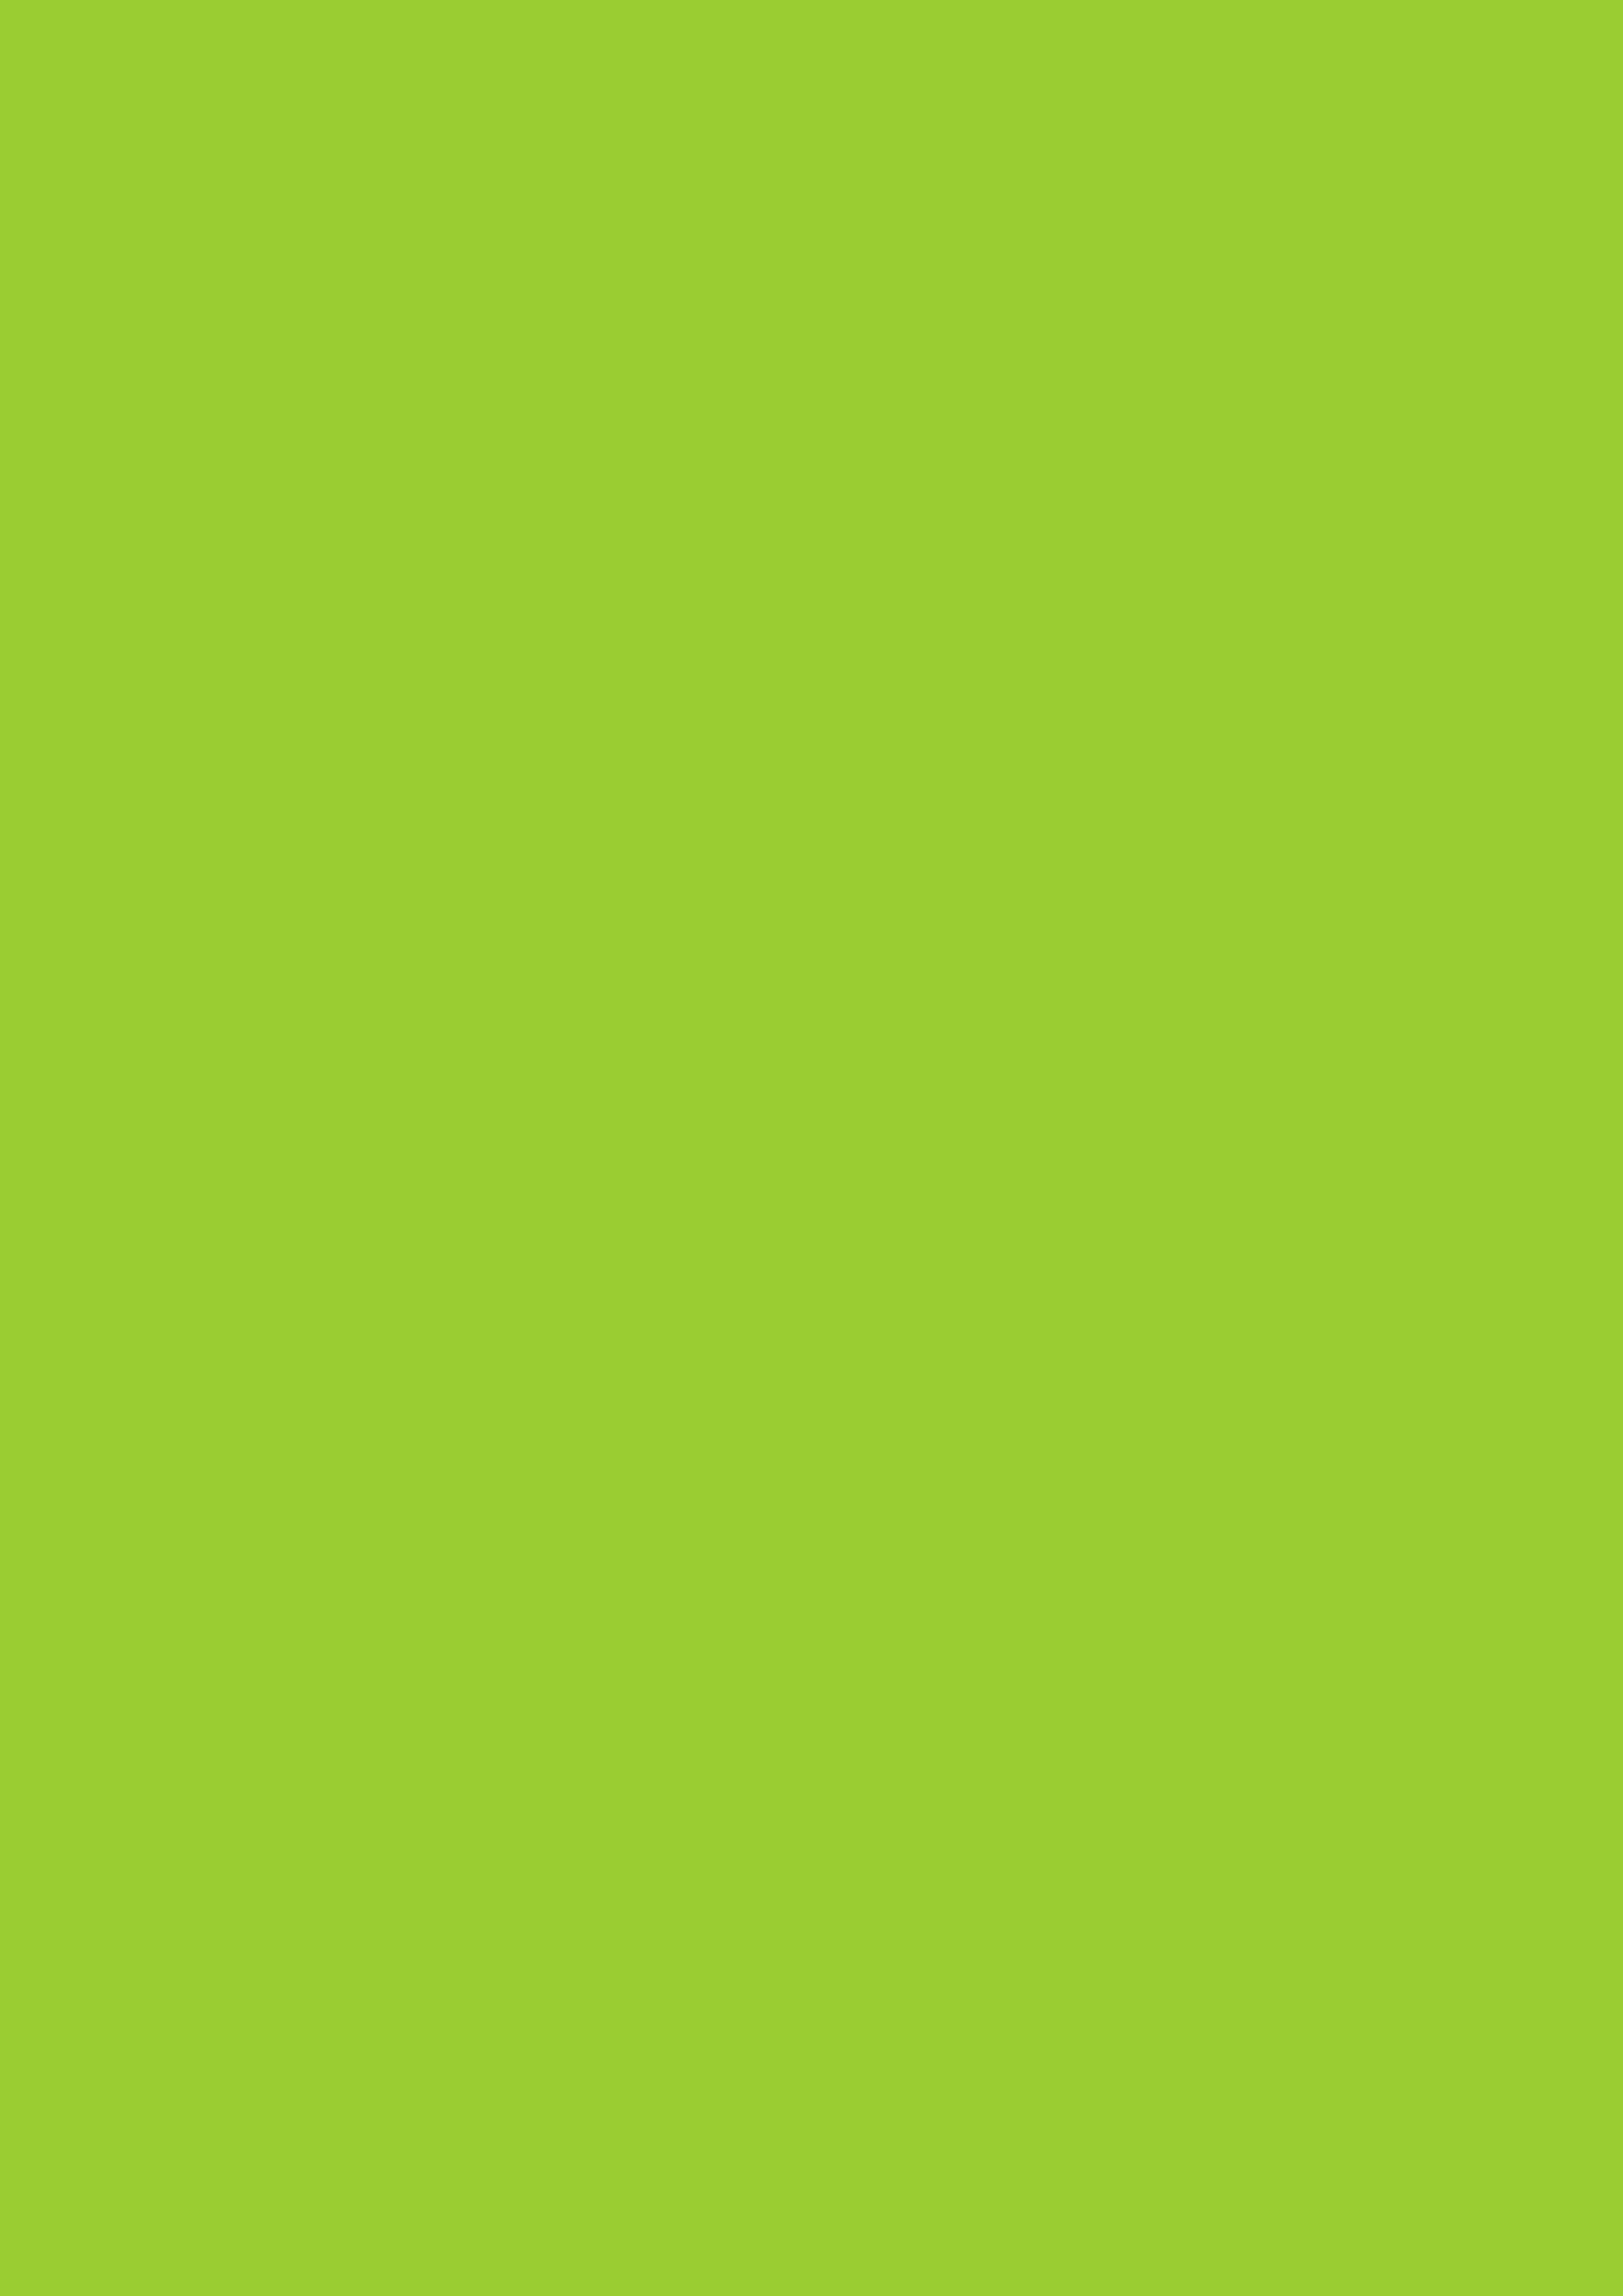 2480x3508 Yellow-green Solid Color Background